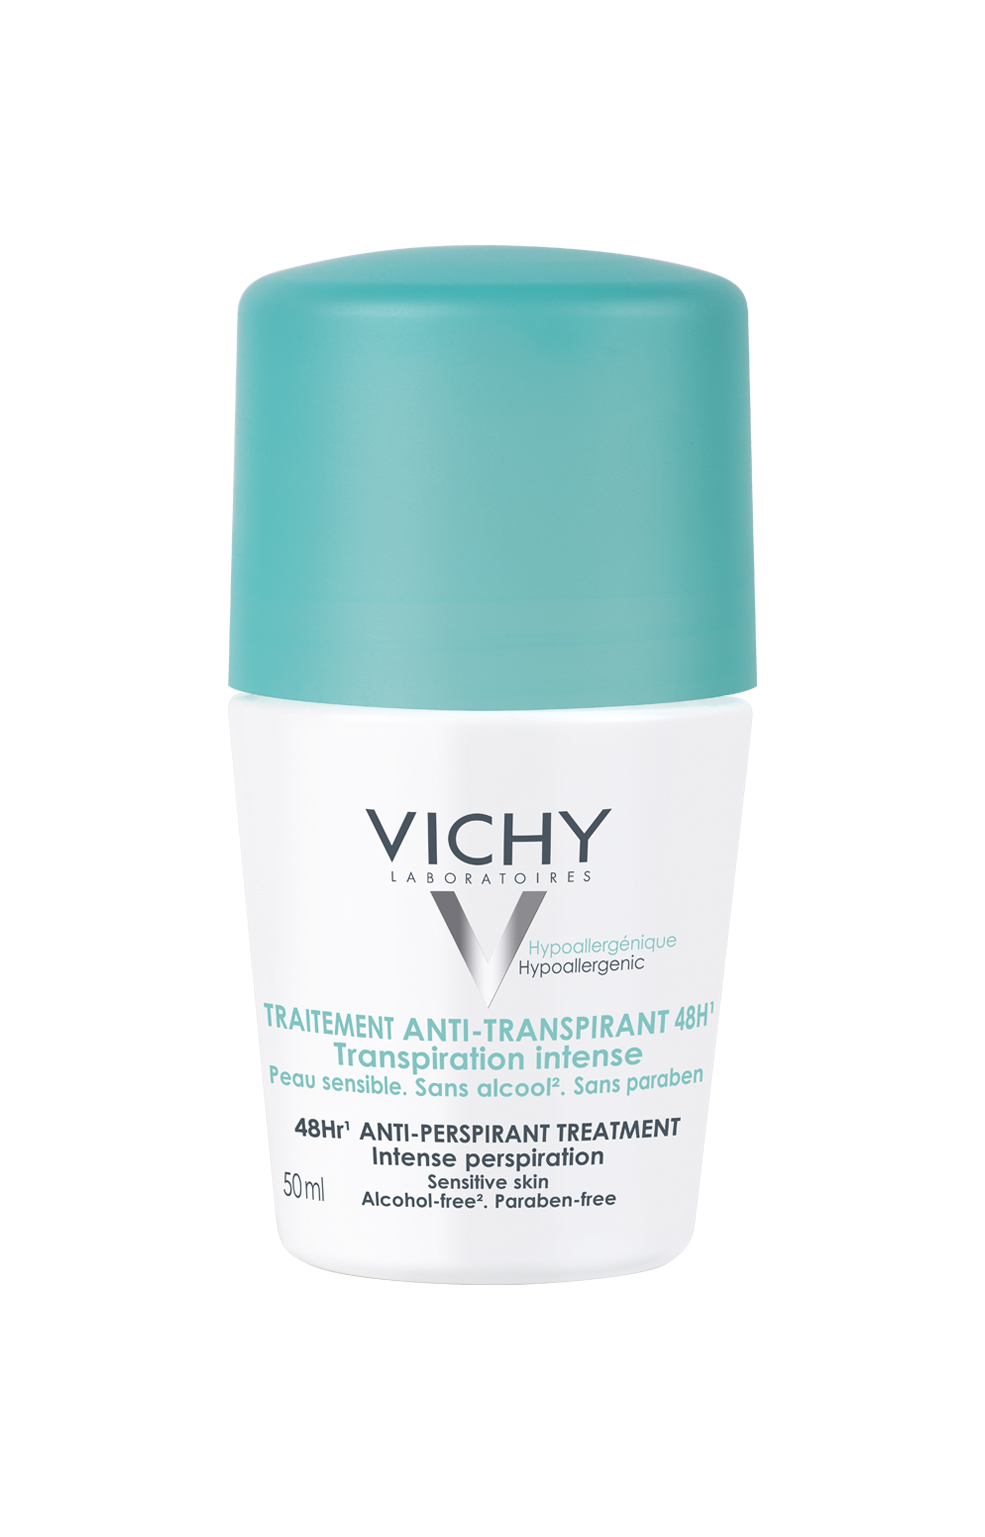 Vichy 48 hour Anti-Perspirant Treatment - 50ml